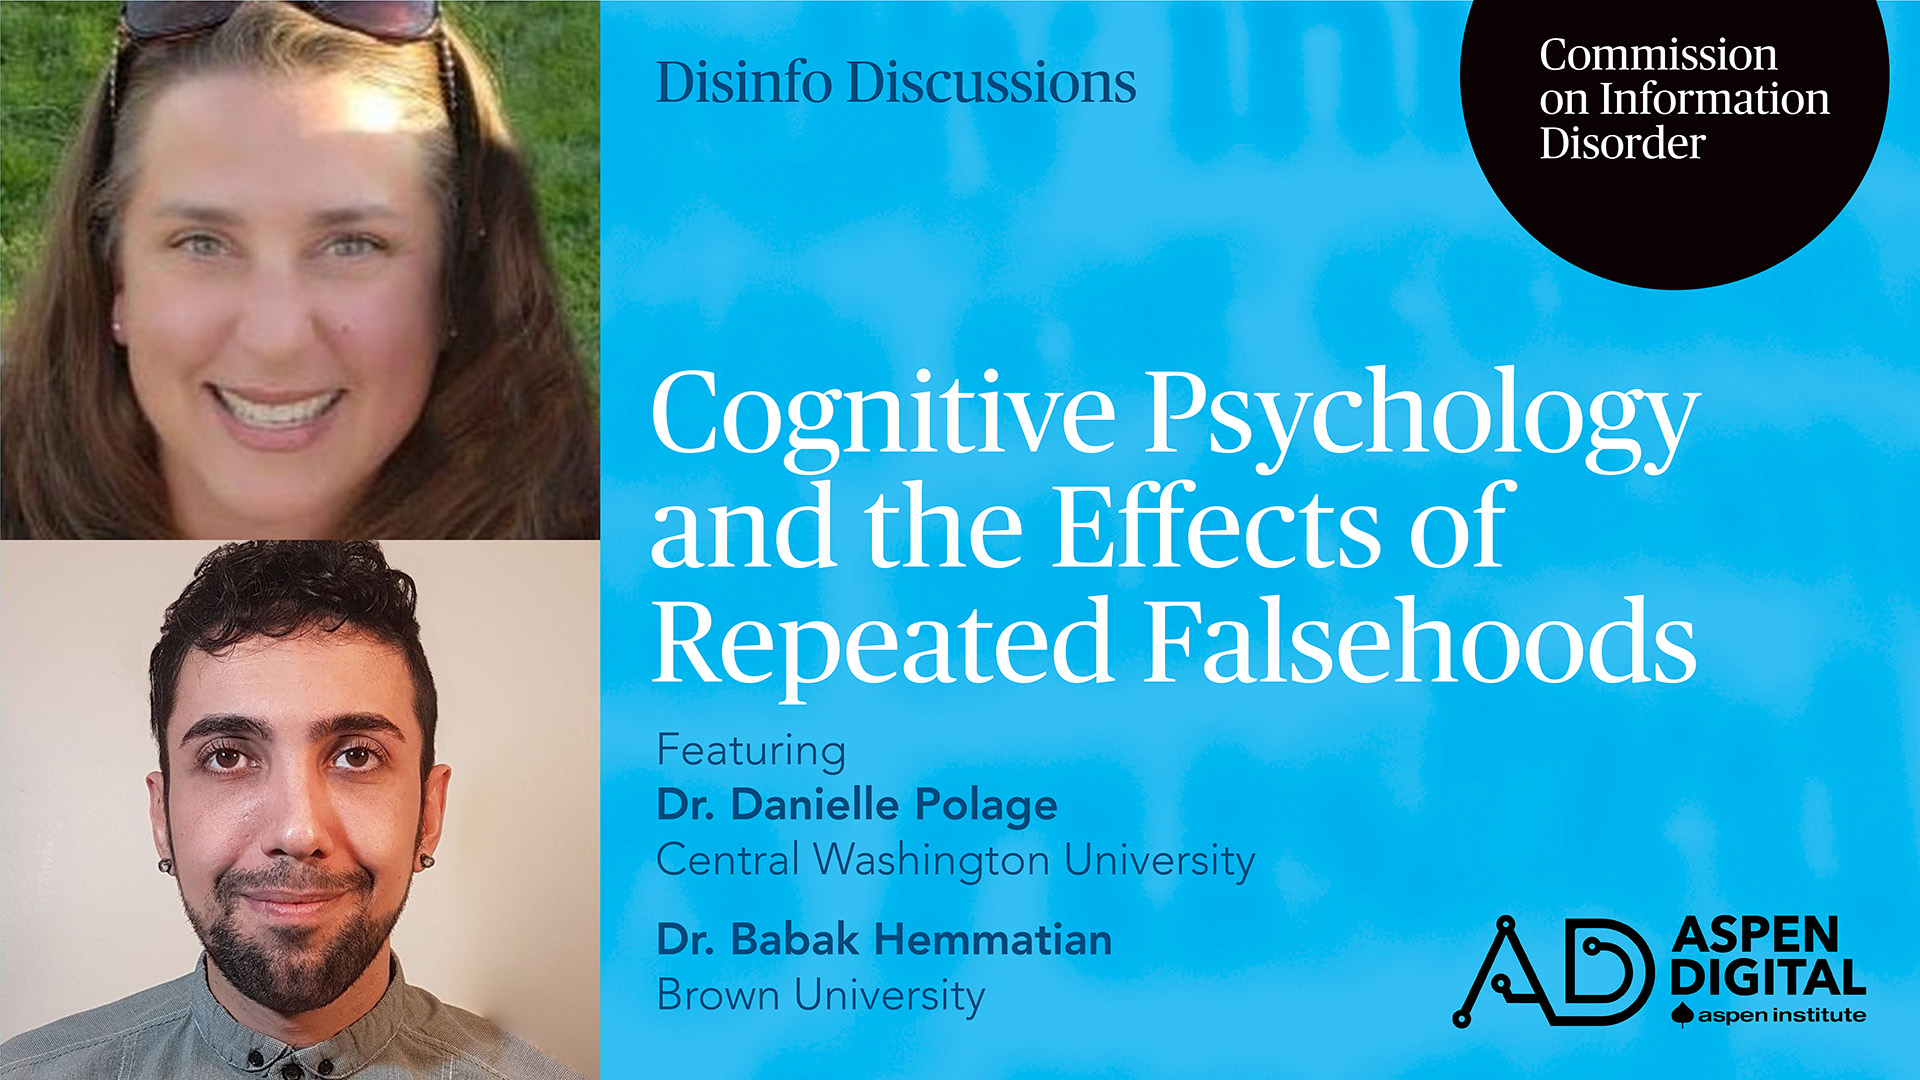 Cognitive Psychology and Repeated Falsehoods